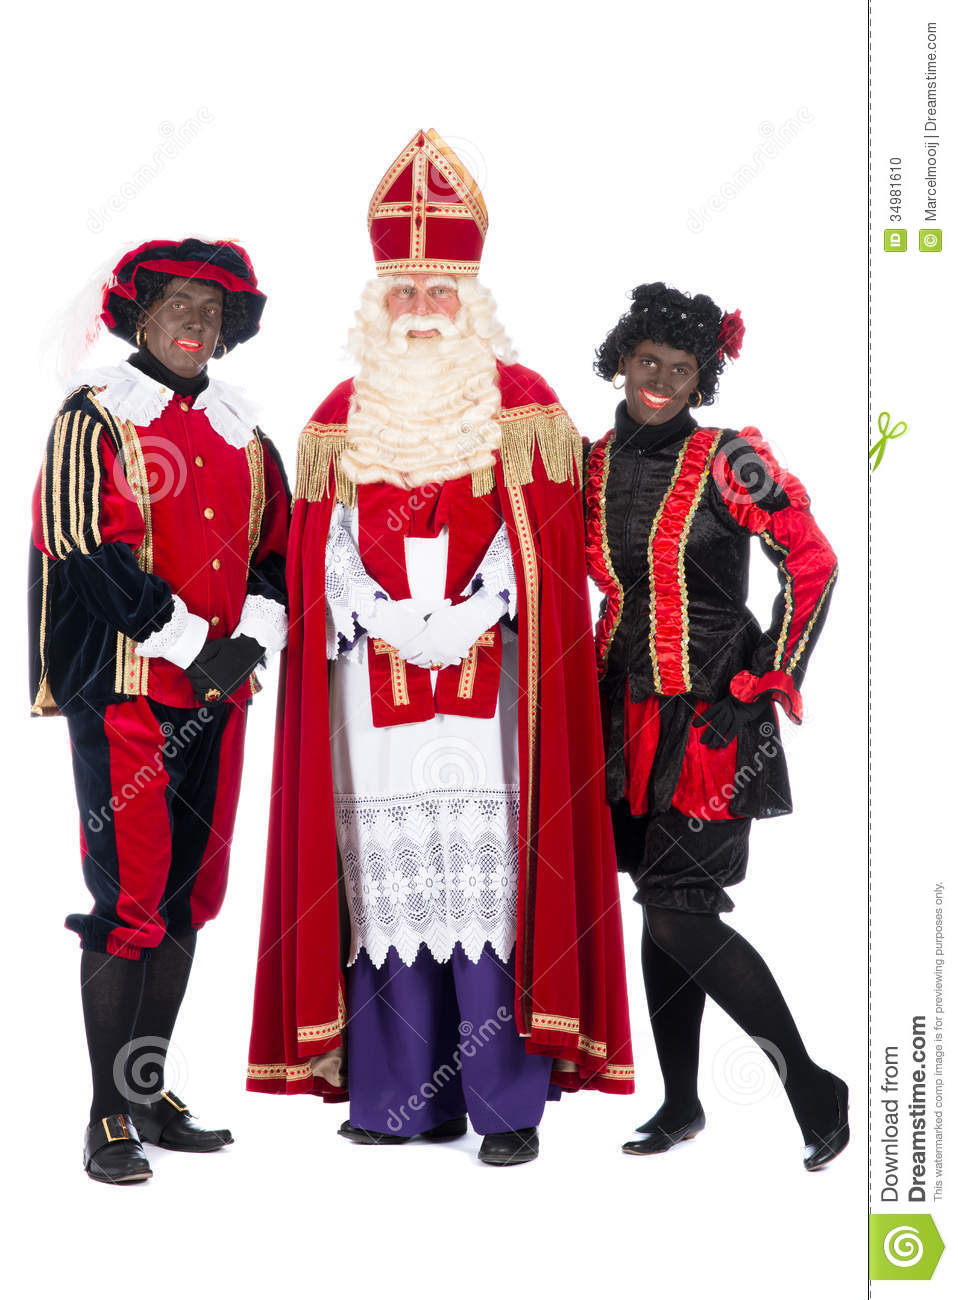 Fabulous Sinterklaas And A Couple Of His Helpers Stock Photo - Image of @TT02